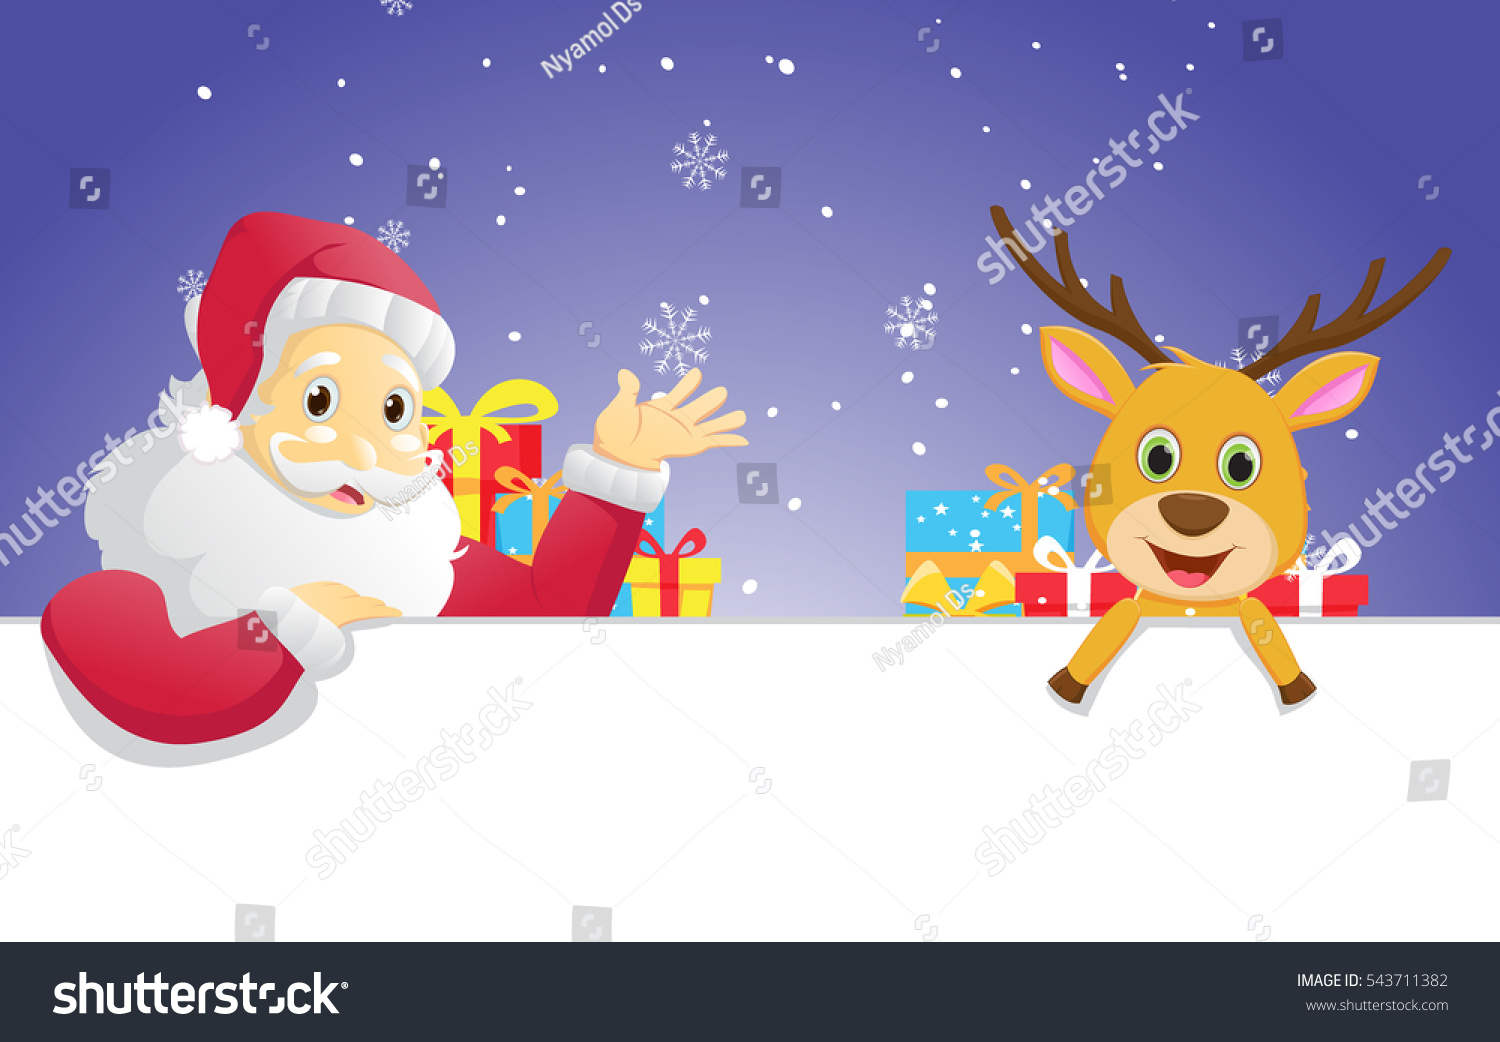 a creative story about santa and his reindeer The history and origin of santa claus posted on december 19, 2008 | 1 comment the story of st nic, his red suit, his reindeer and little helpers.